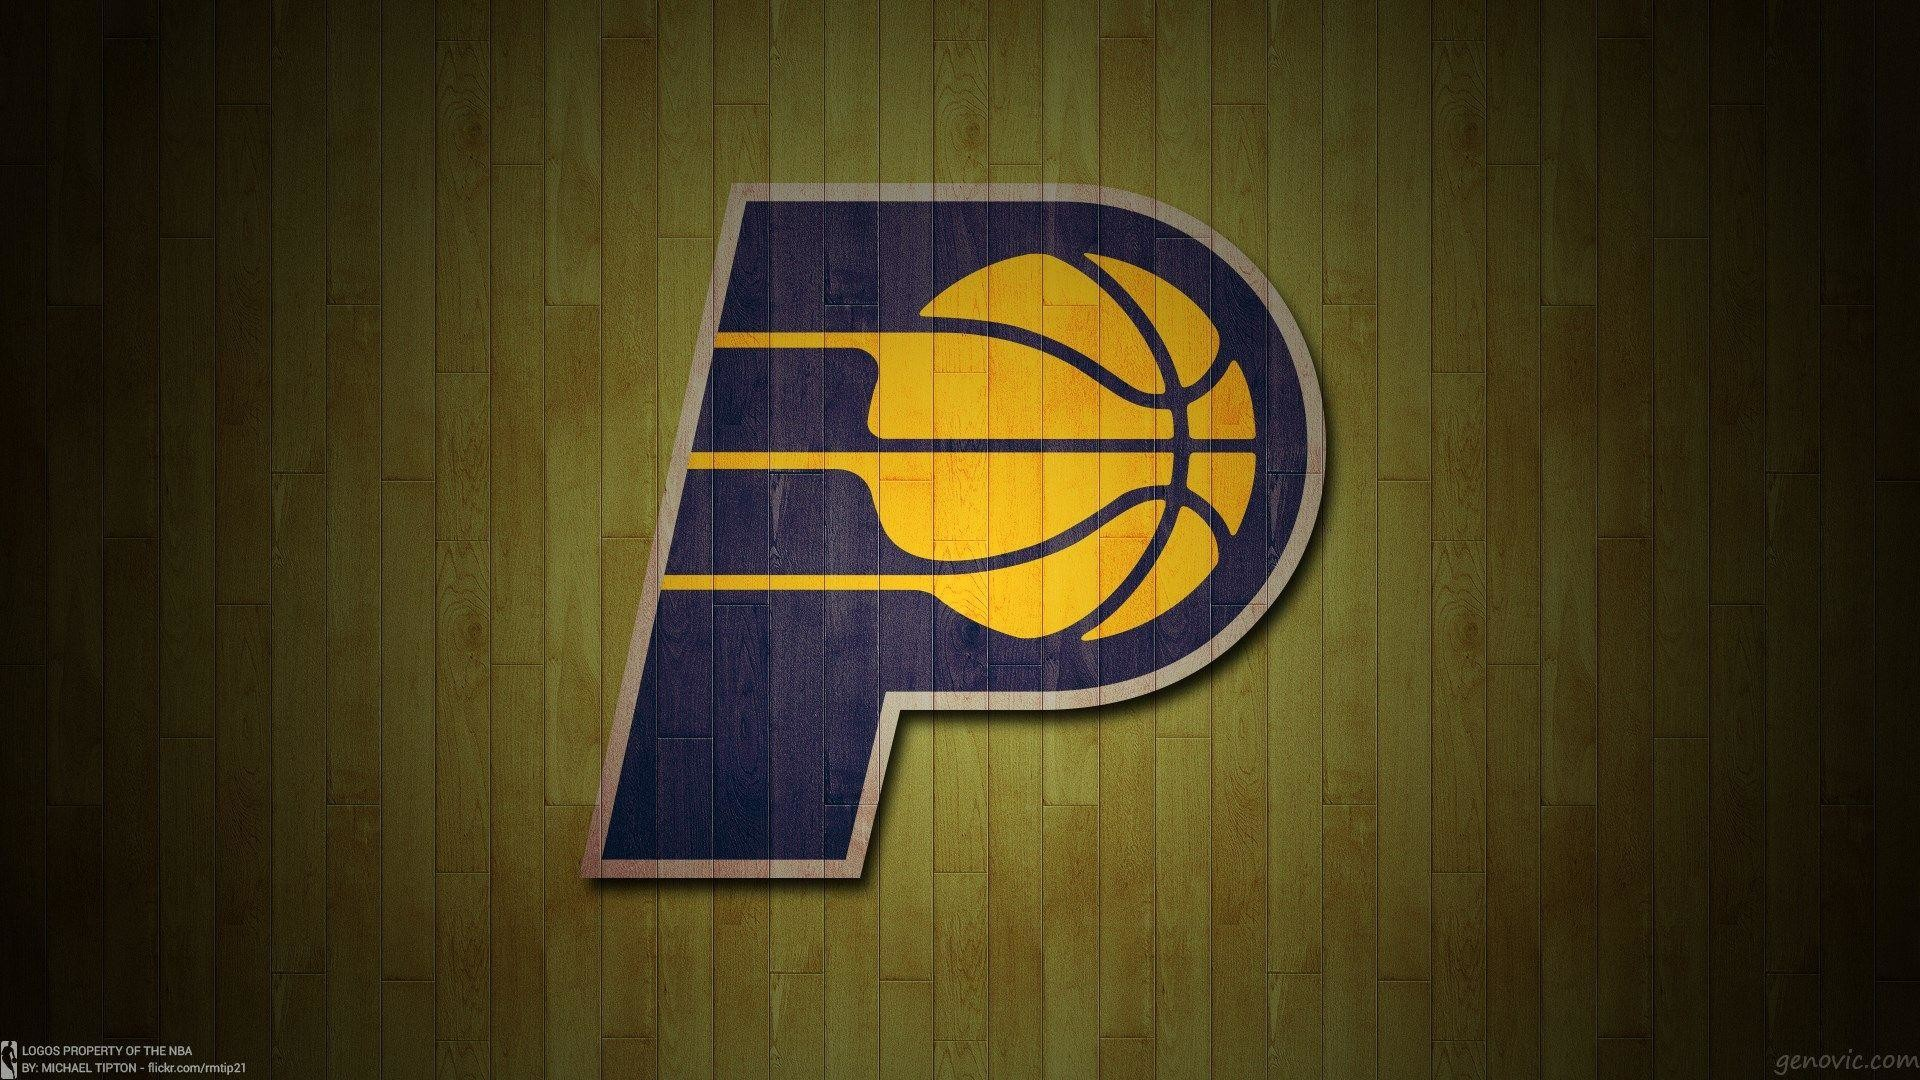 1920x1080 Indiana Pacers Wallpaper, 43+ Best & Inspirational High Quality .